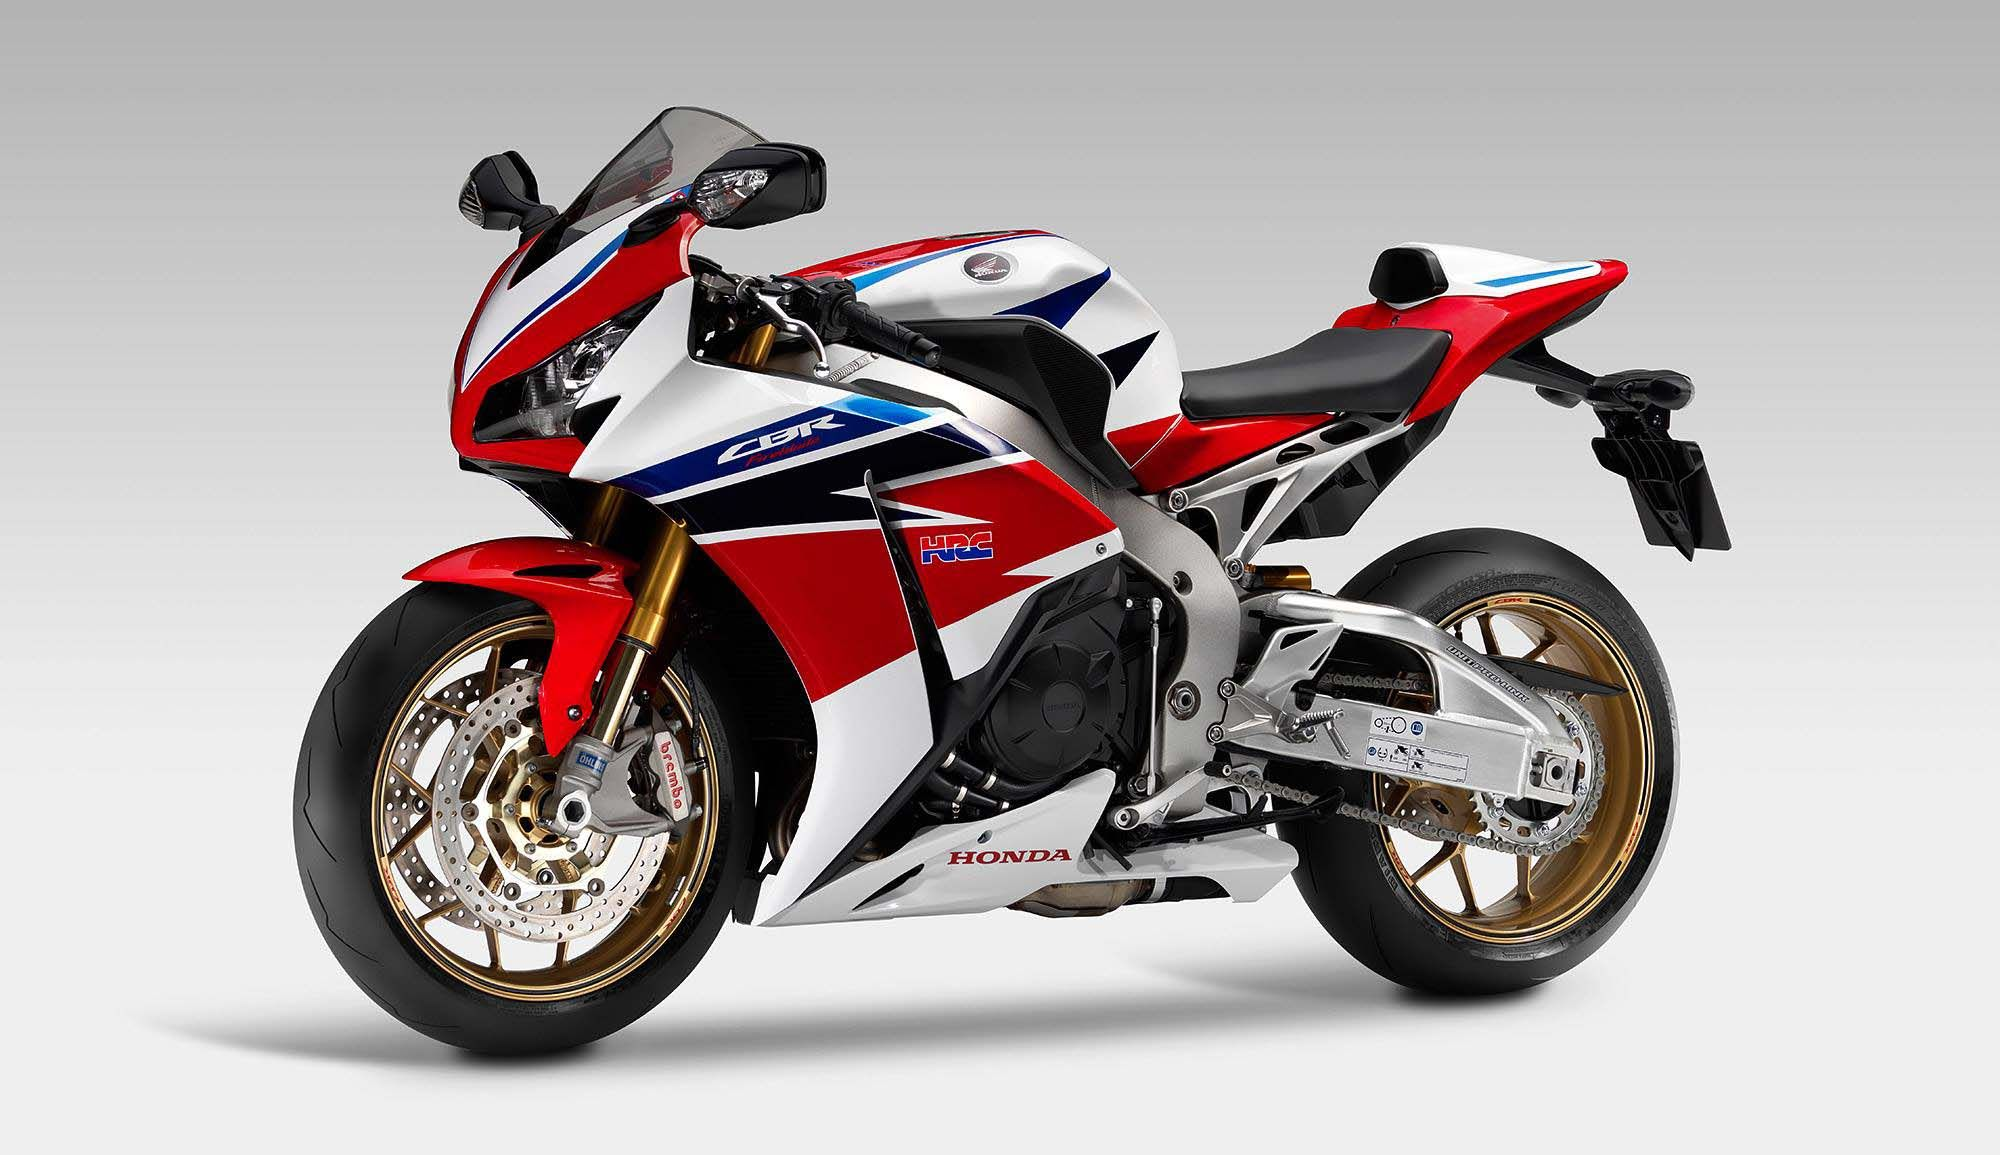 2014 Honda CBR 1000RR in Tri-color | Dream it - Get it! | Pinterest ...